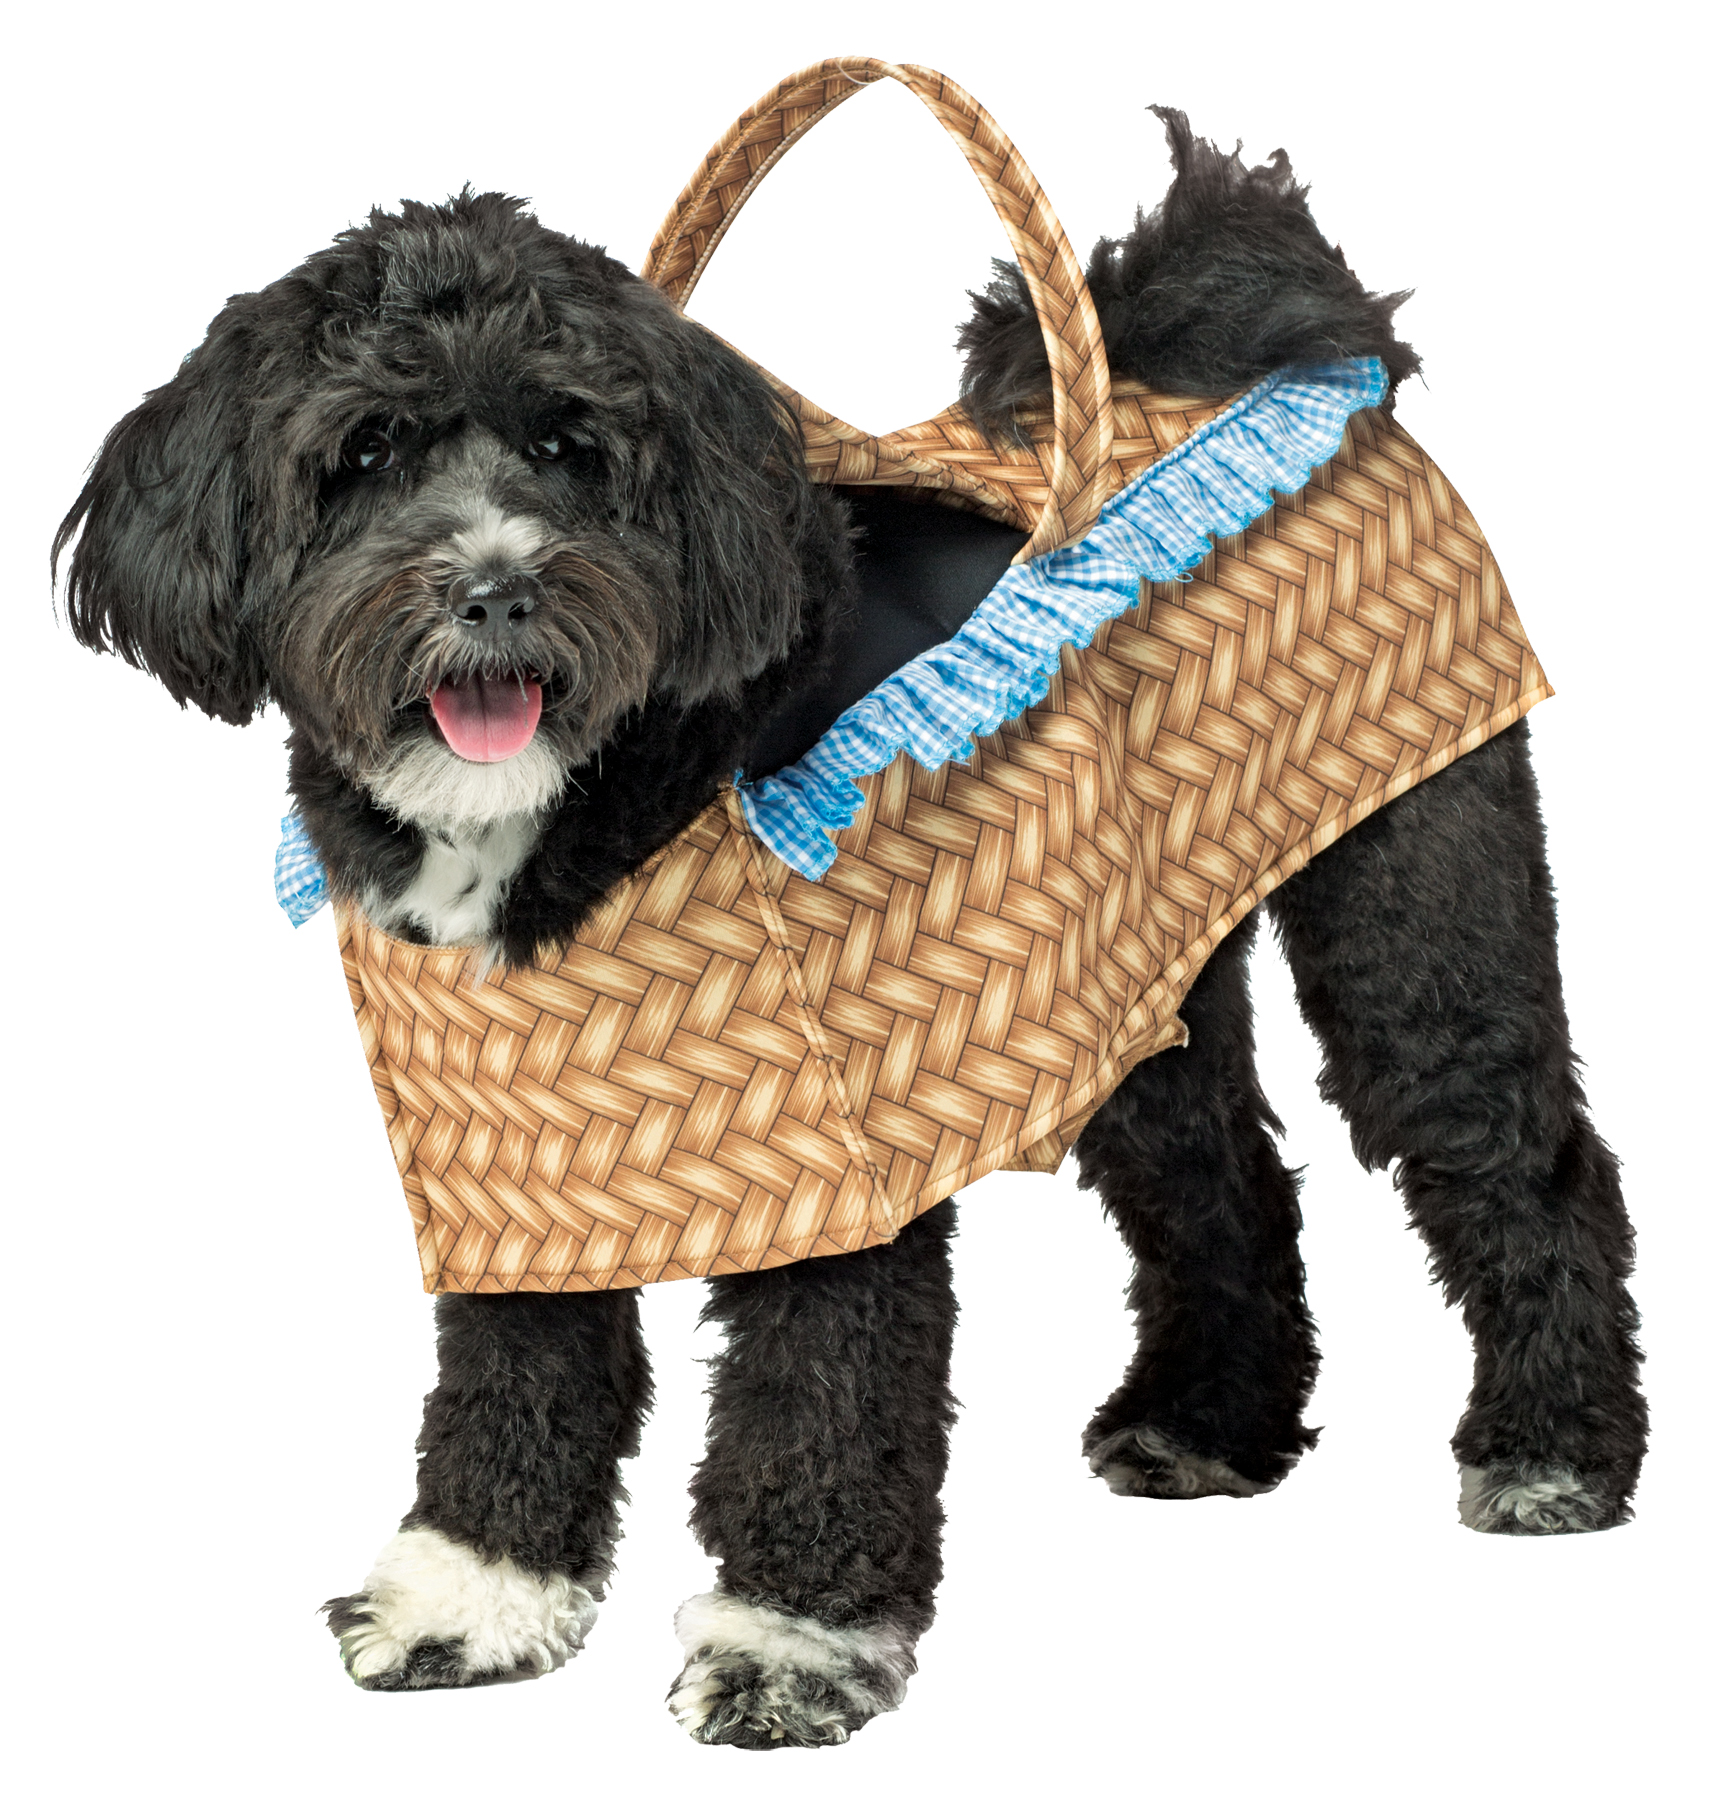 Toto Wizard Of Oz Dorothy Carrying Toto Dog In Basket Dog Costume Halloween